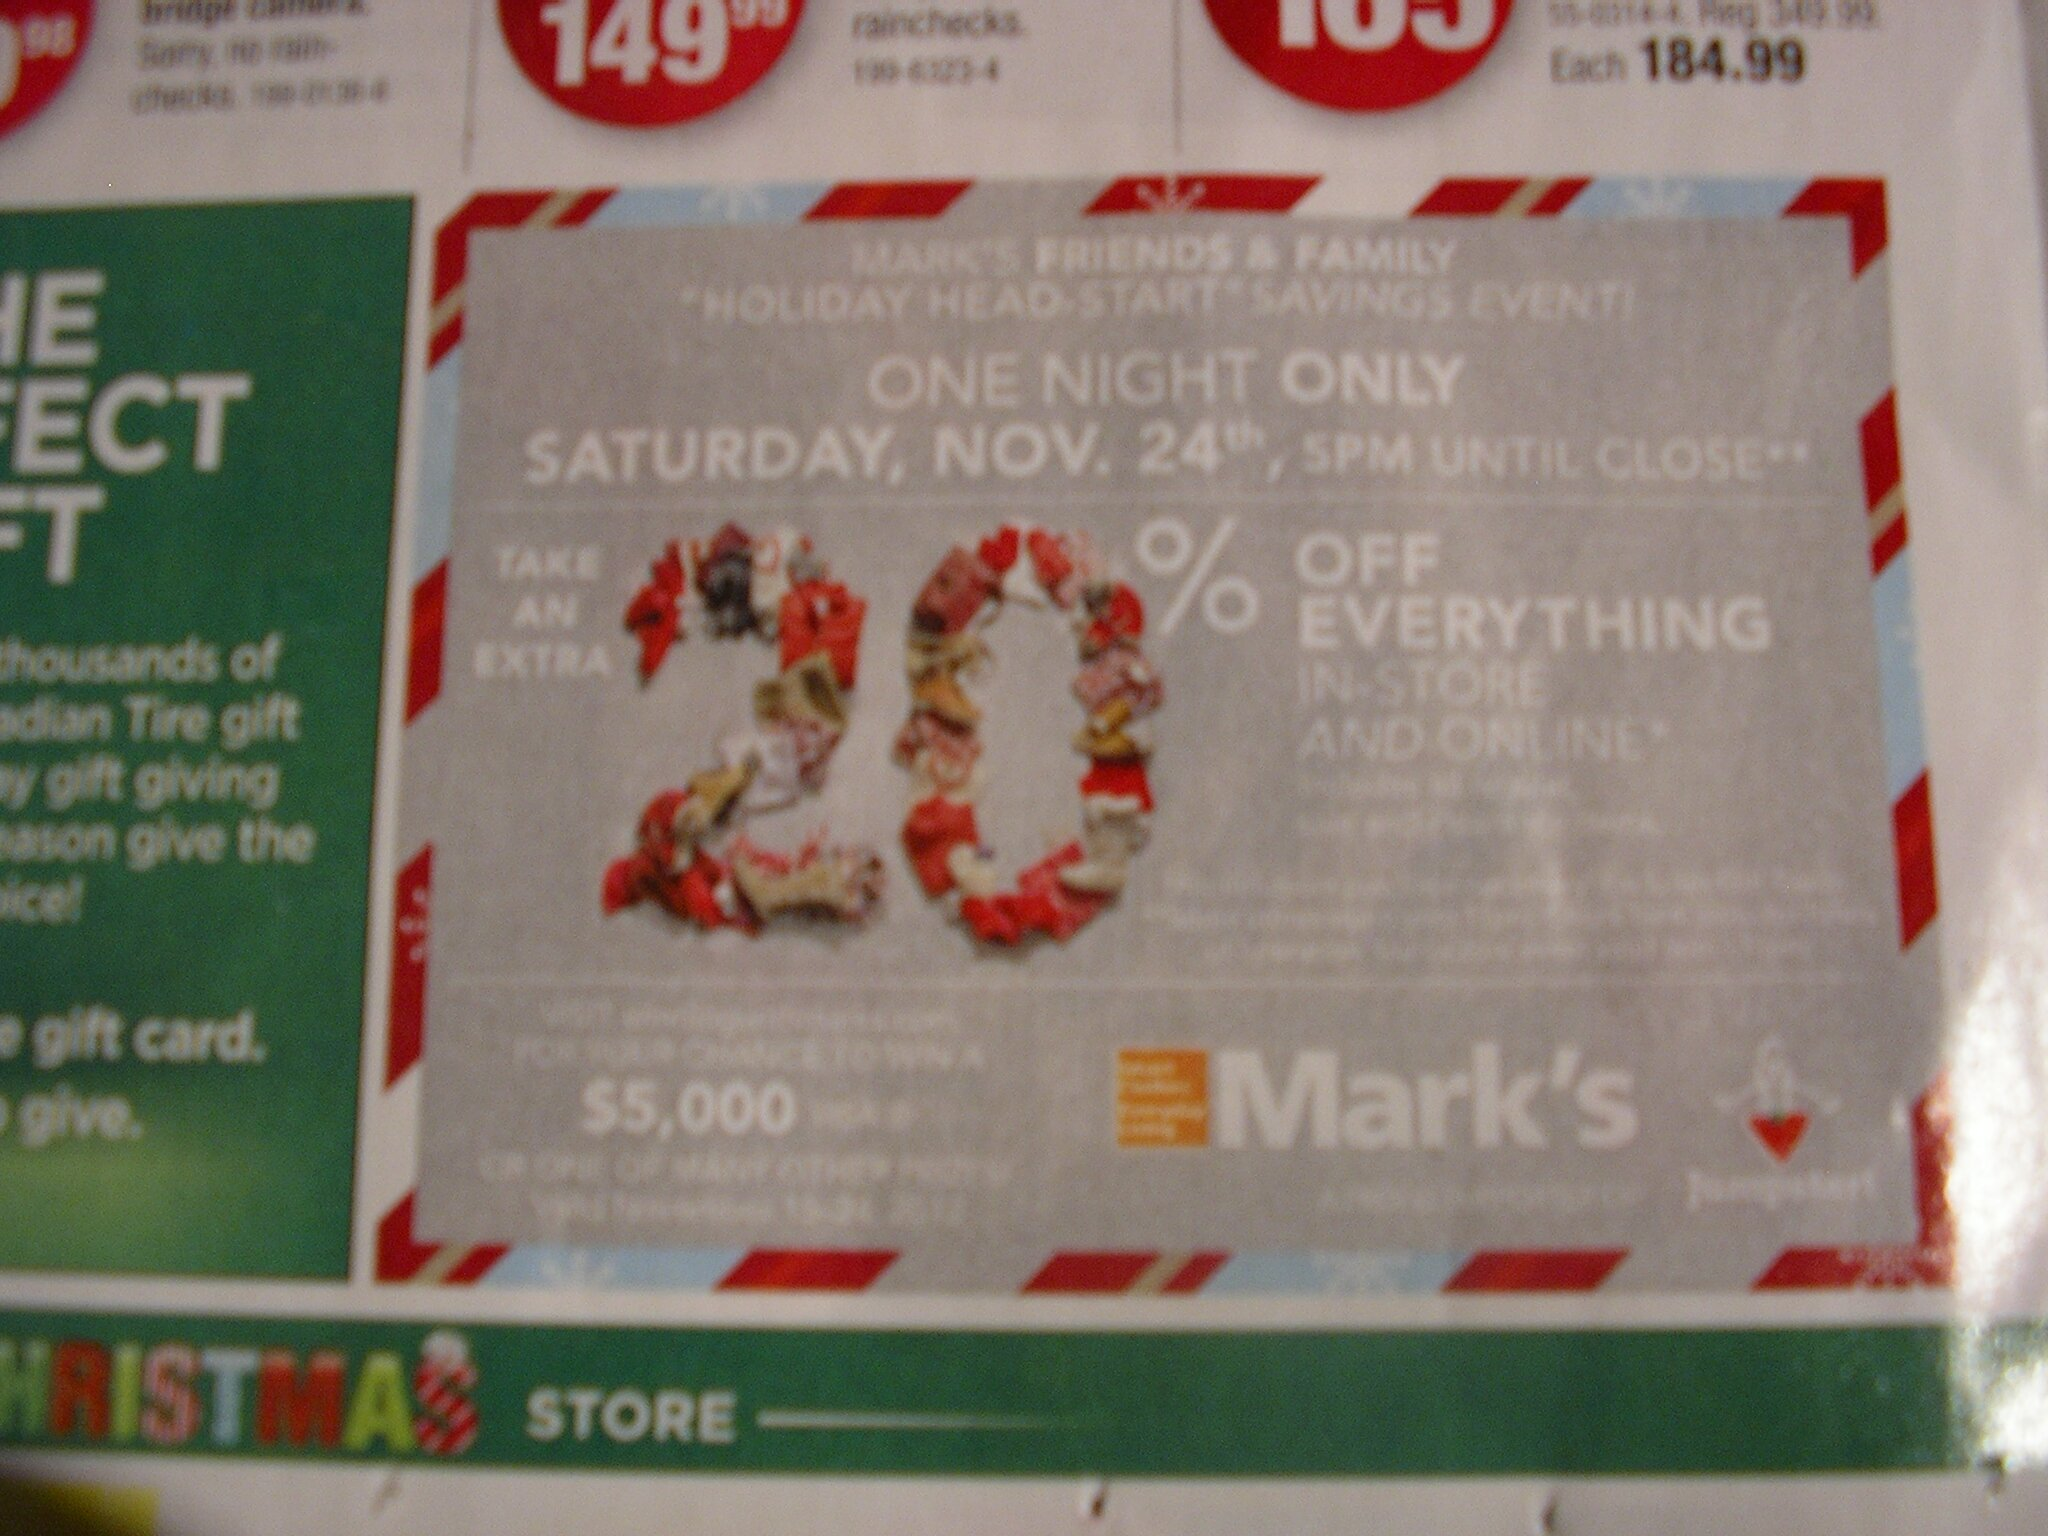 20% Off EVERYTHING at Mark's – Nov. 24, 2012, 5pm – close